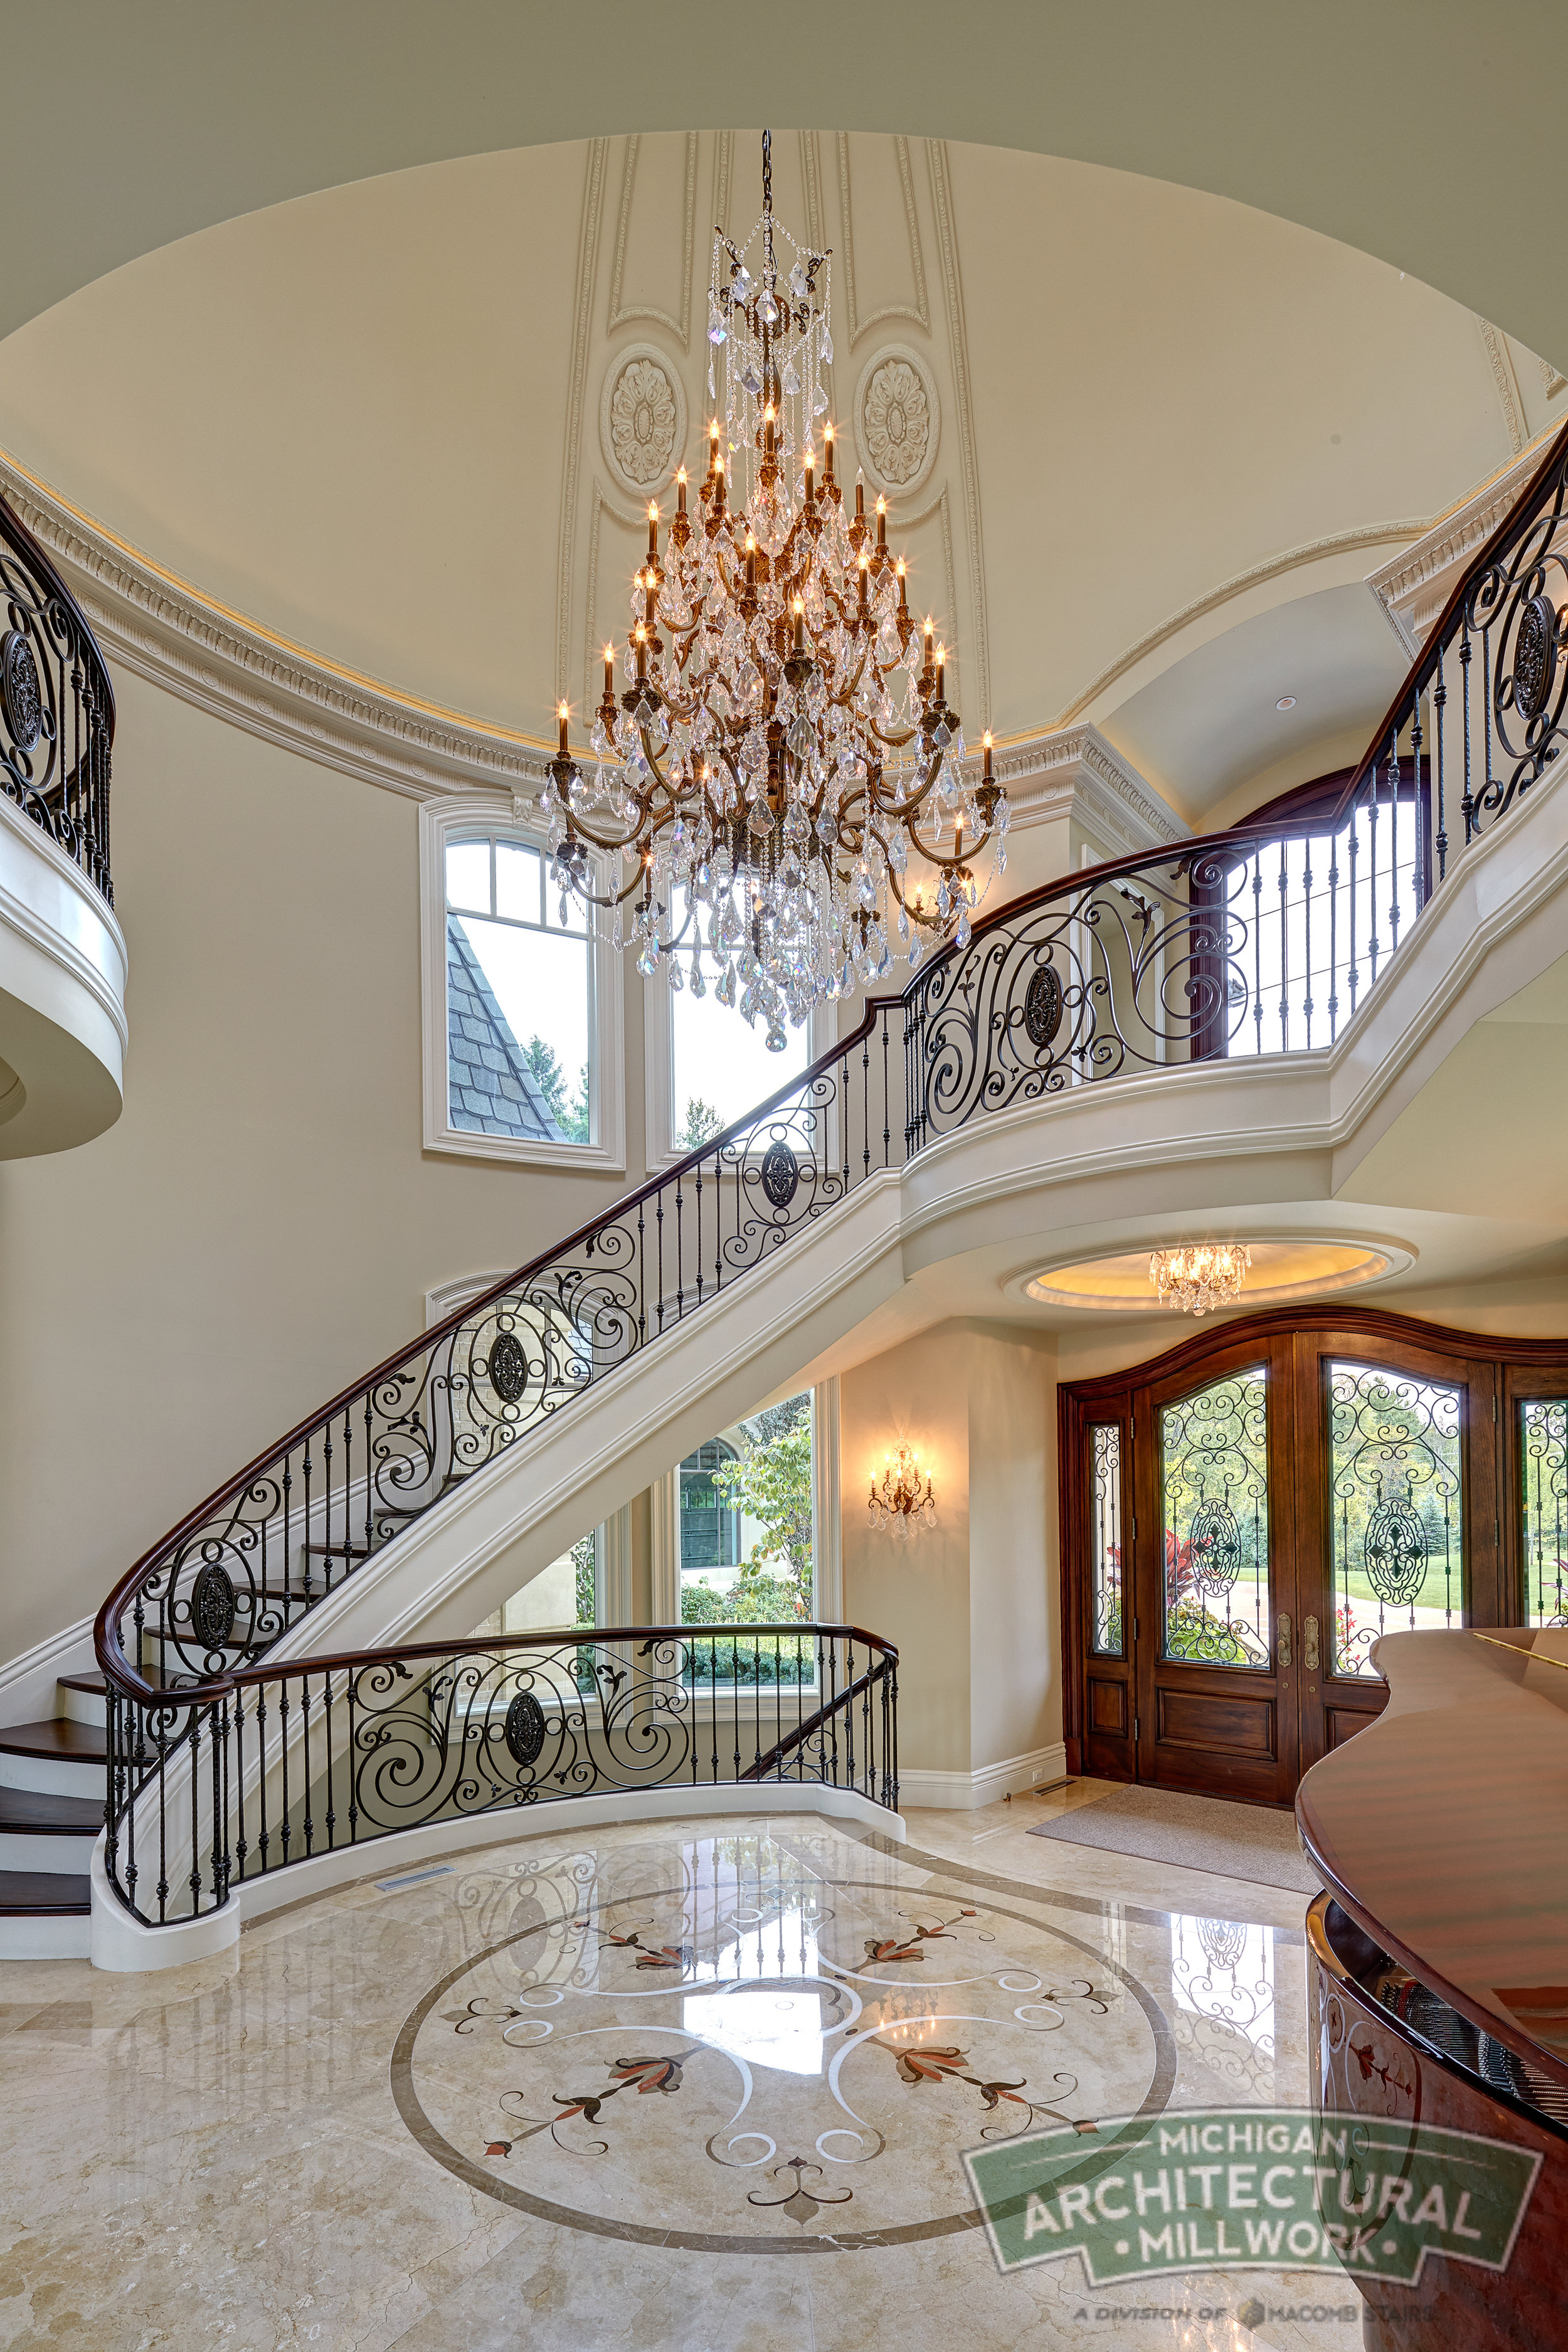 Michigan Architectural Millwork- Moulding and Millwork Photo-115.jpg